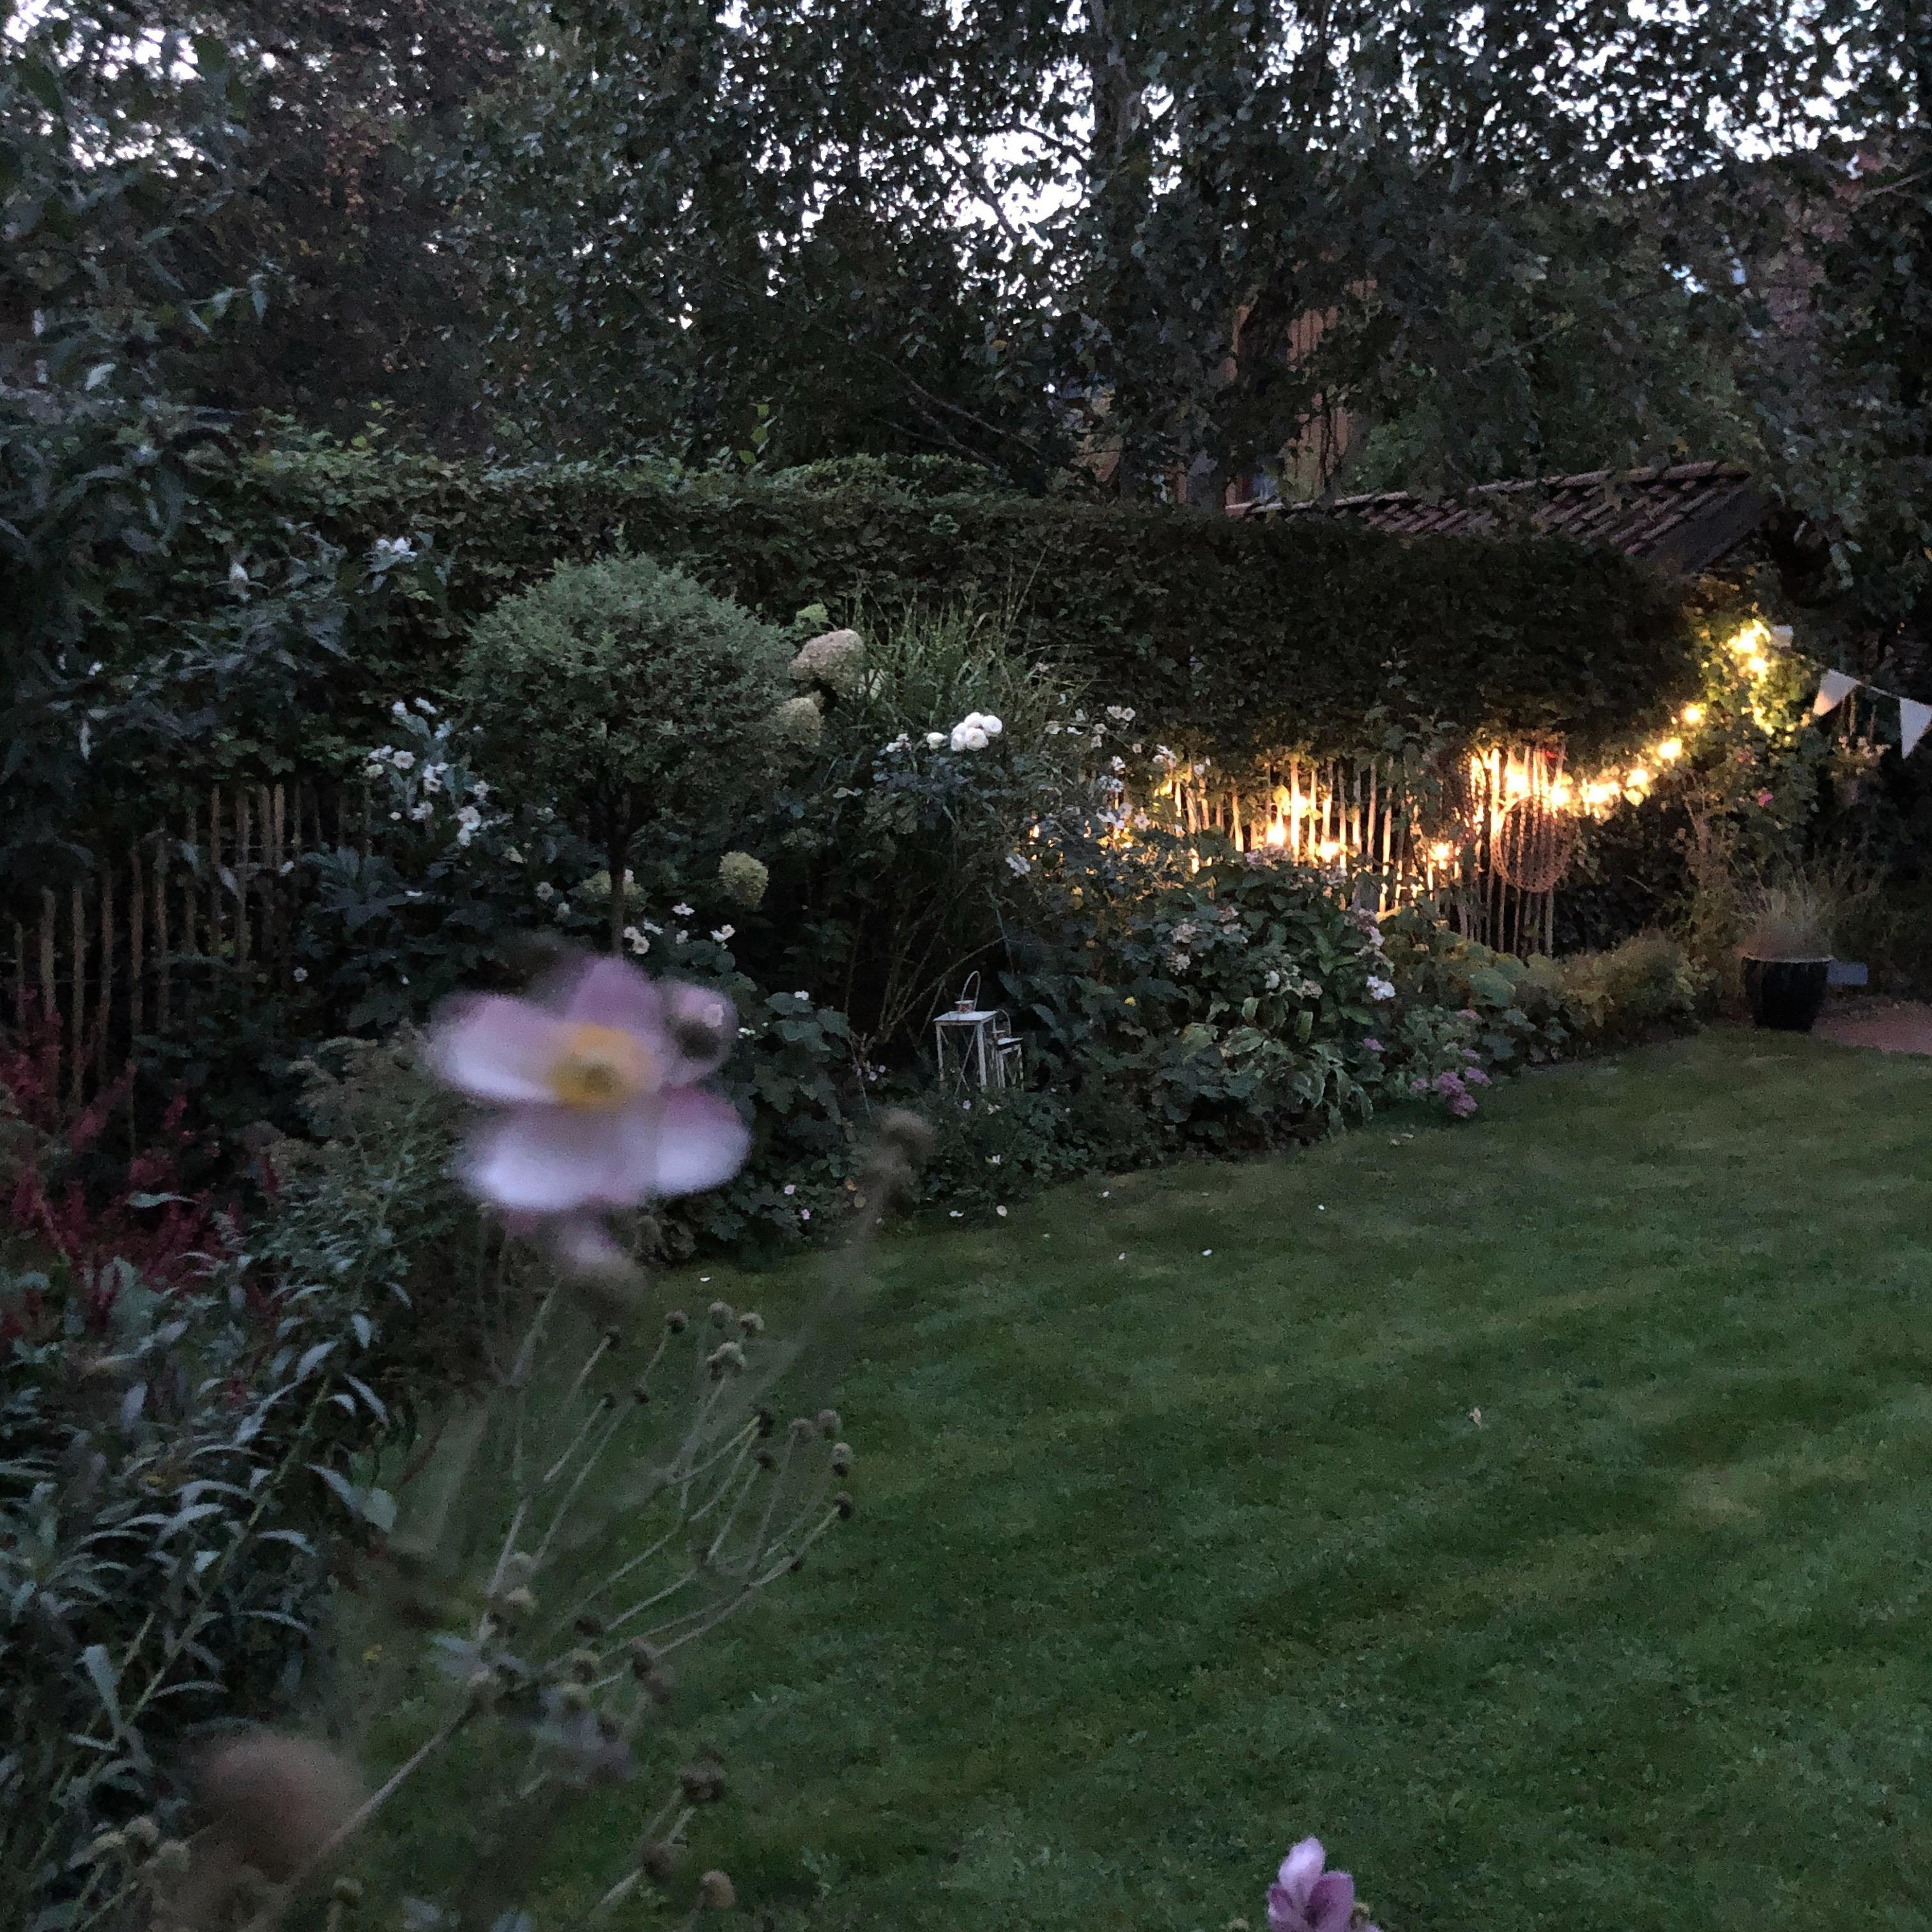 End of a perfect day.